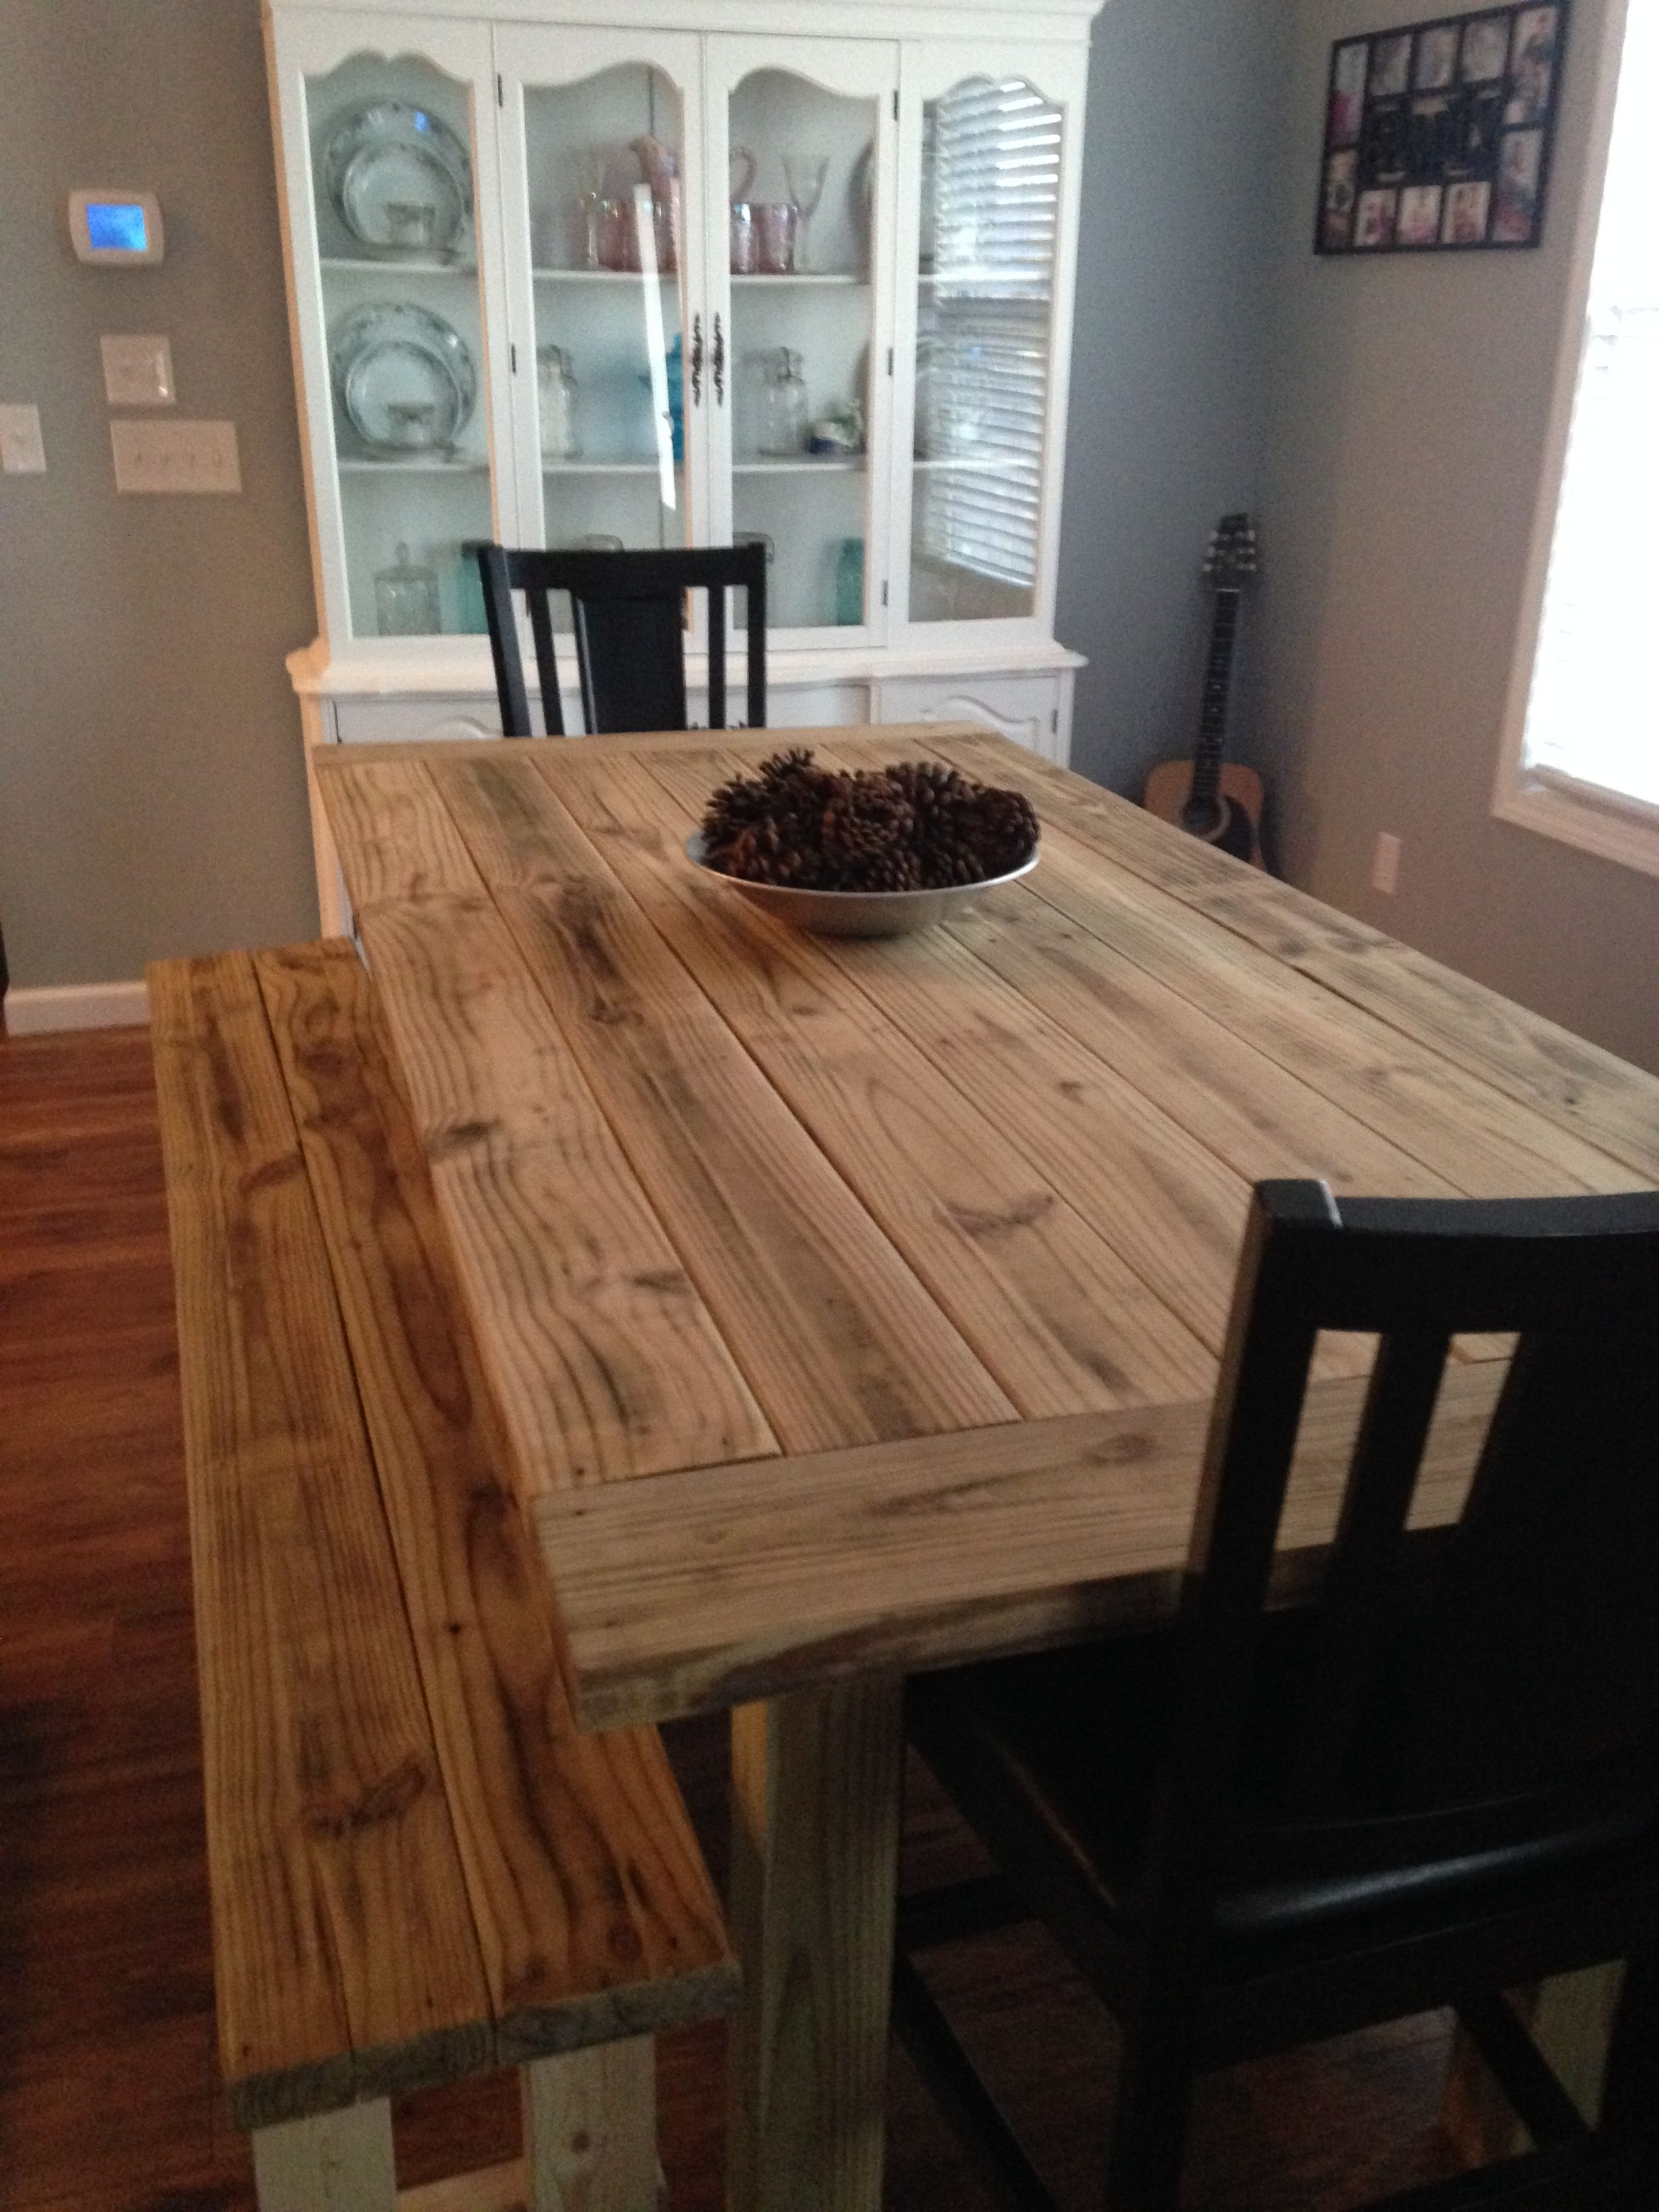 Our farm style table. My gift from hubby | Esstisch | Pinterest ...